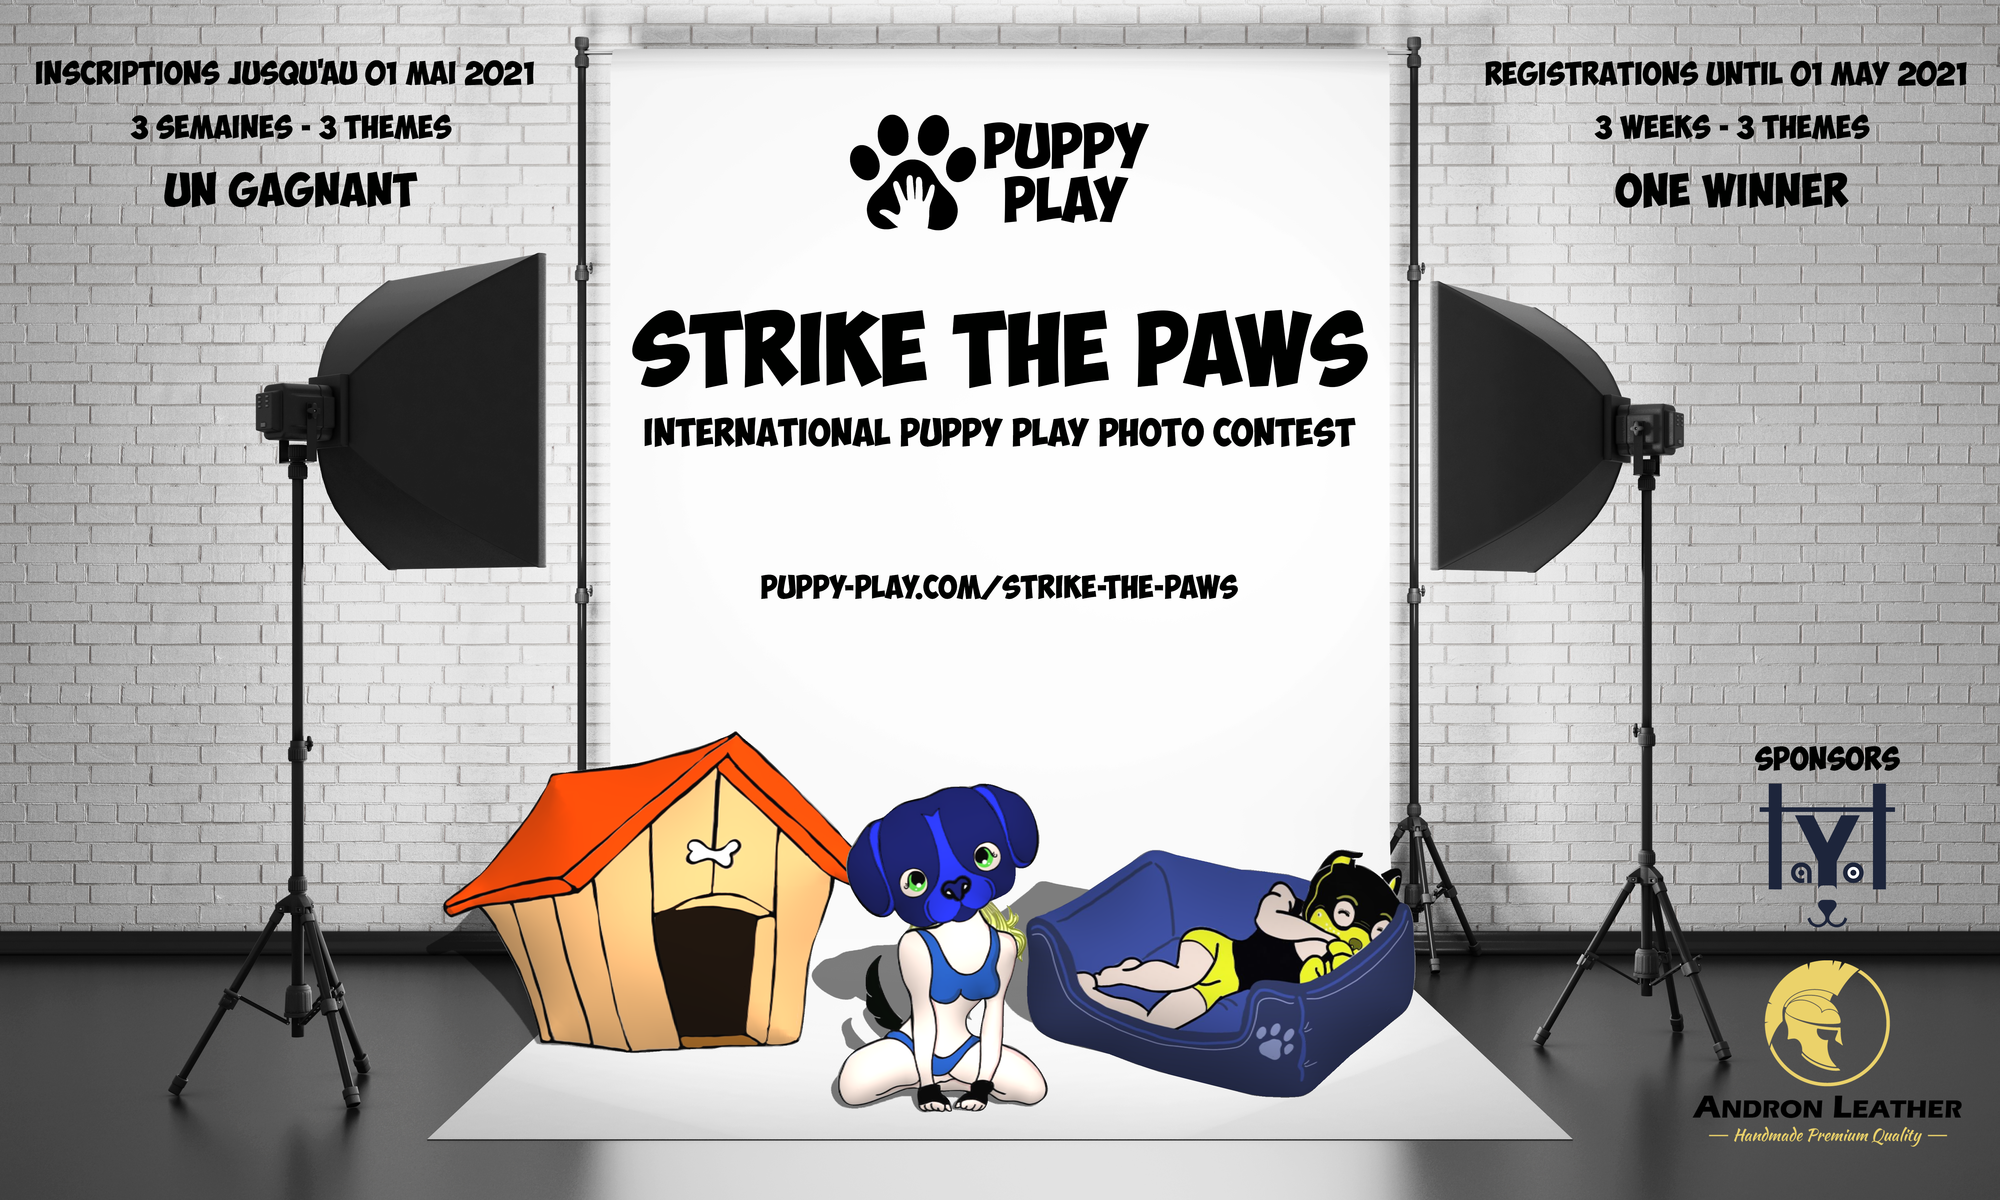 2021-04-13 - Strike The Paws – International Puppy-Play Photo Contest